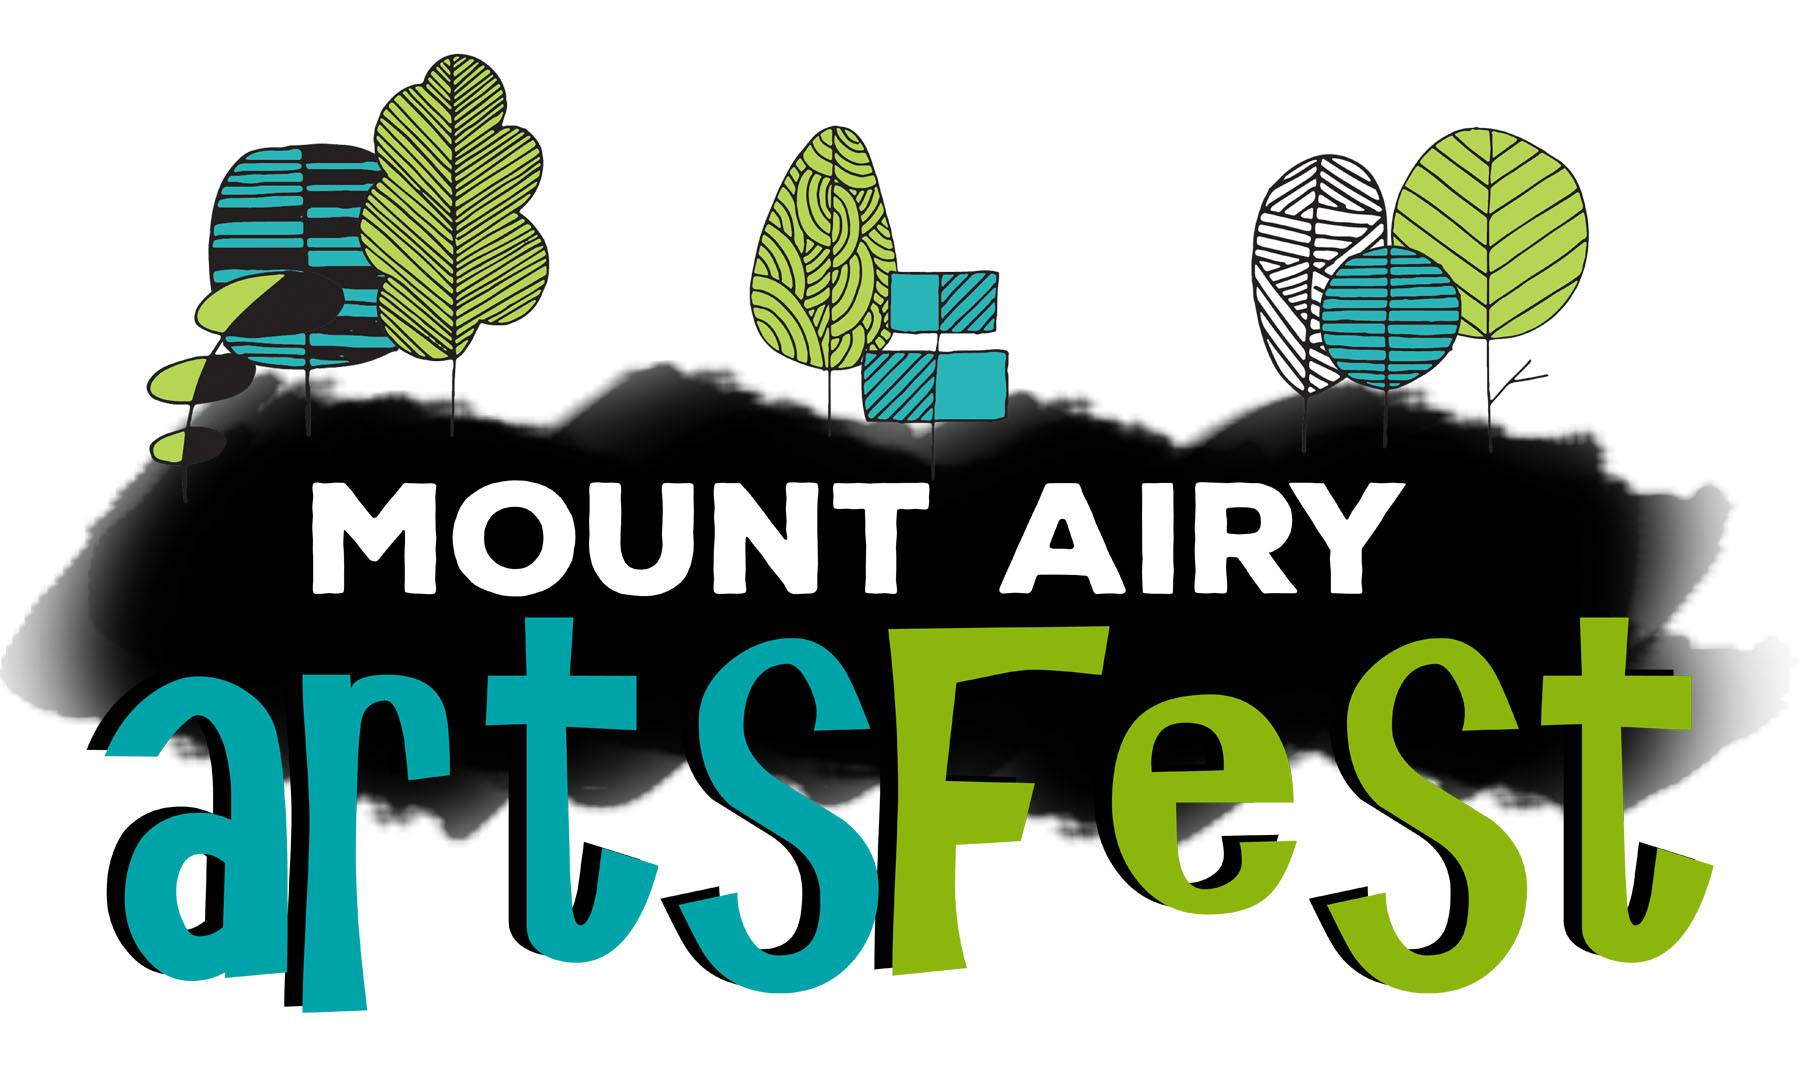 Mount Airy ArtsFest